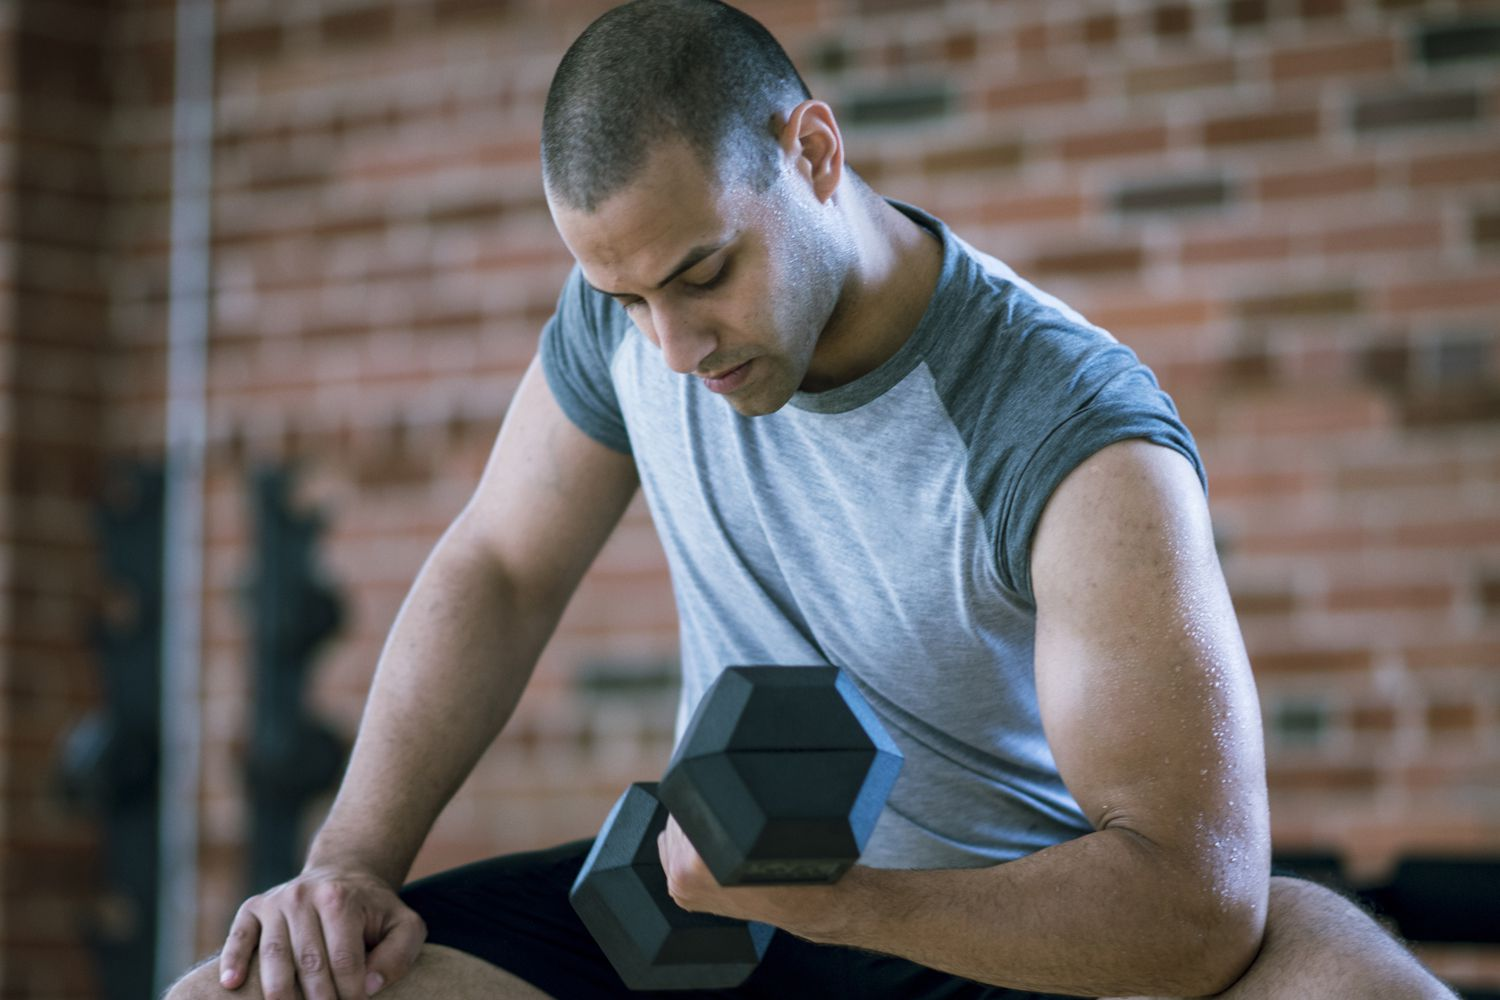 Concentric Muscle Contractions to Build Strength